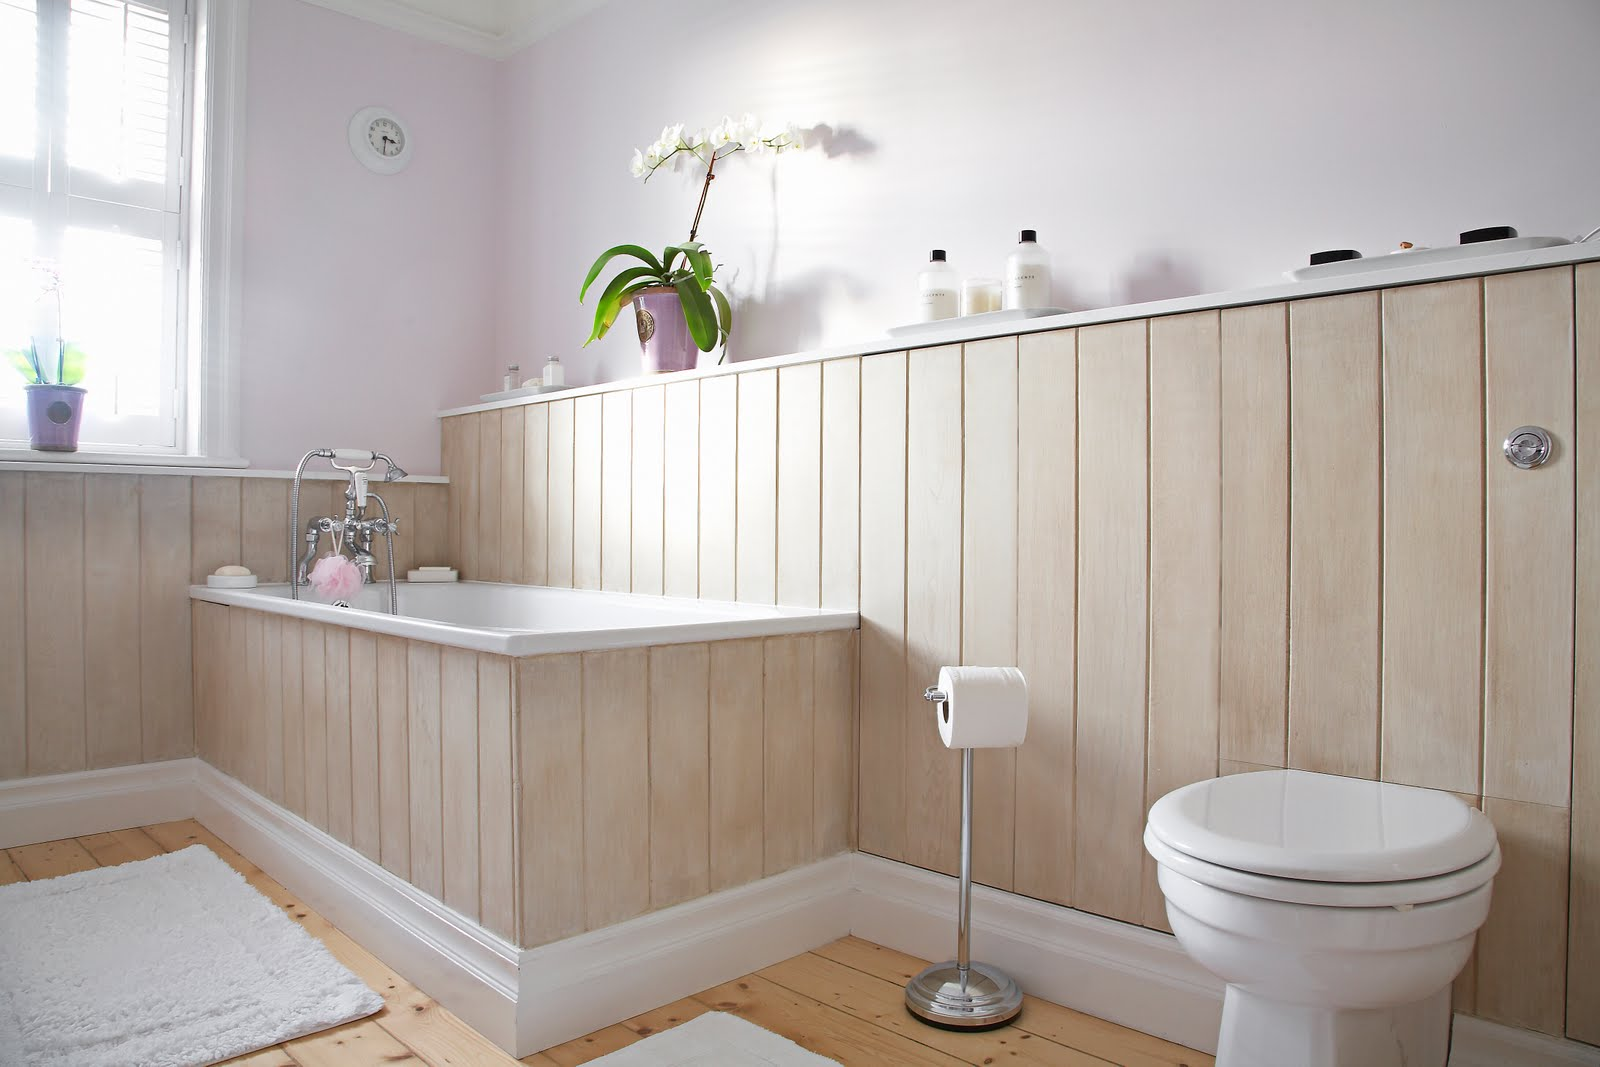 Cymru kitchens ltd cymru kitchens kitchen bathroom example for Bathroom examples